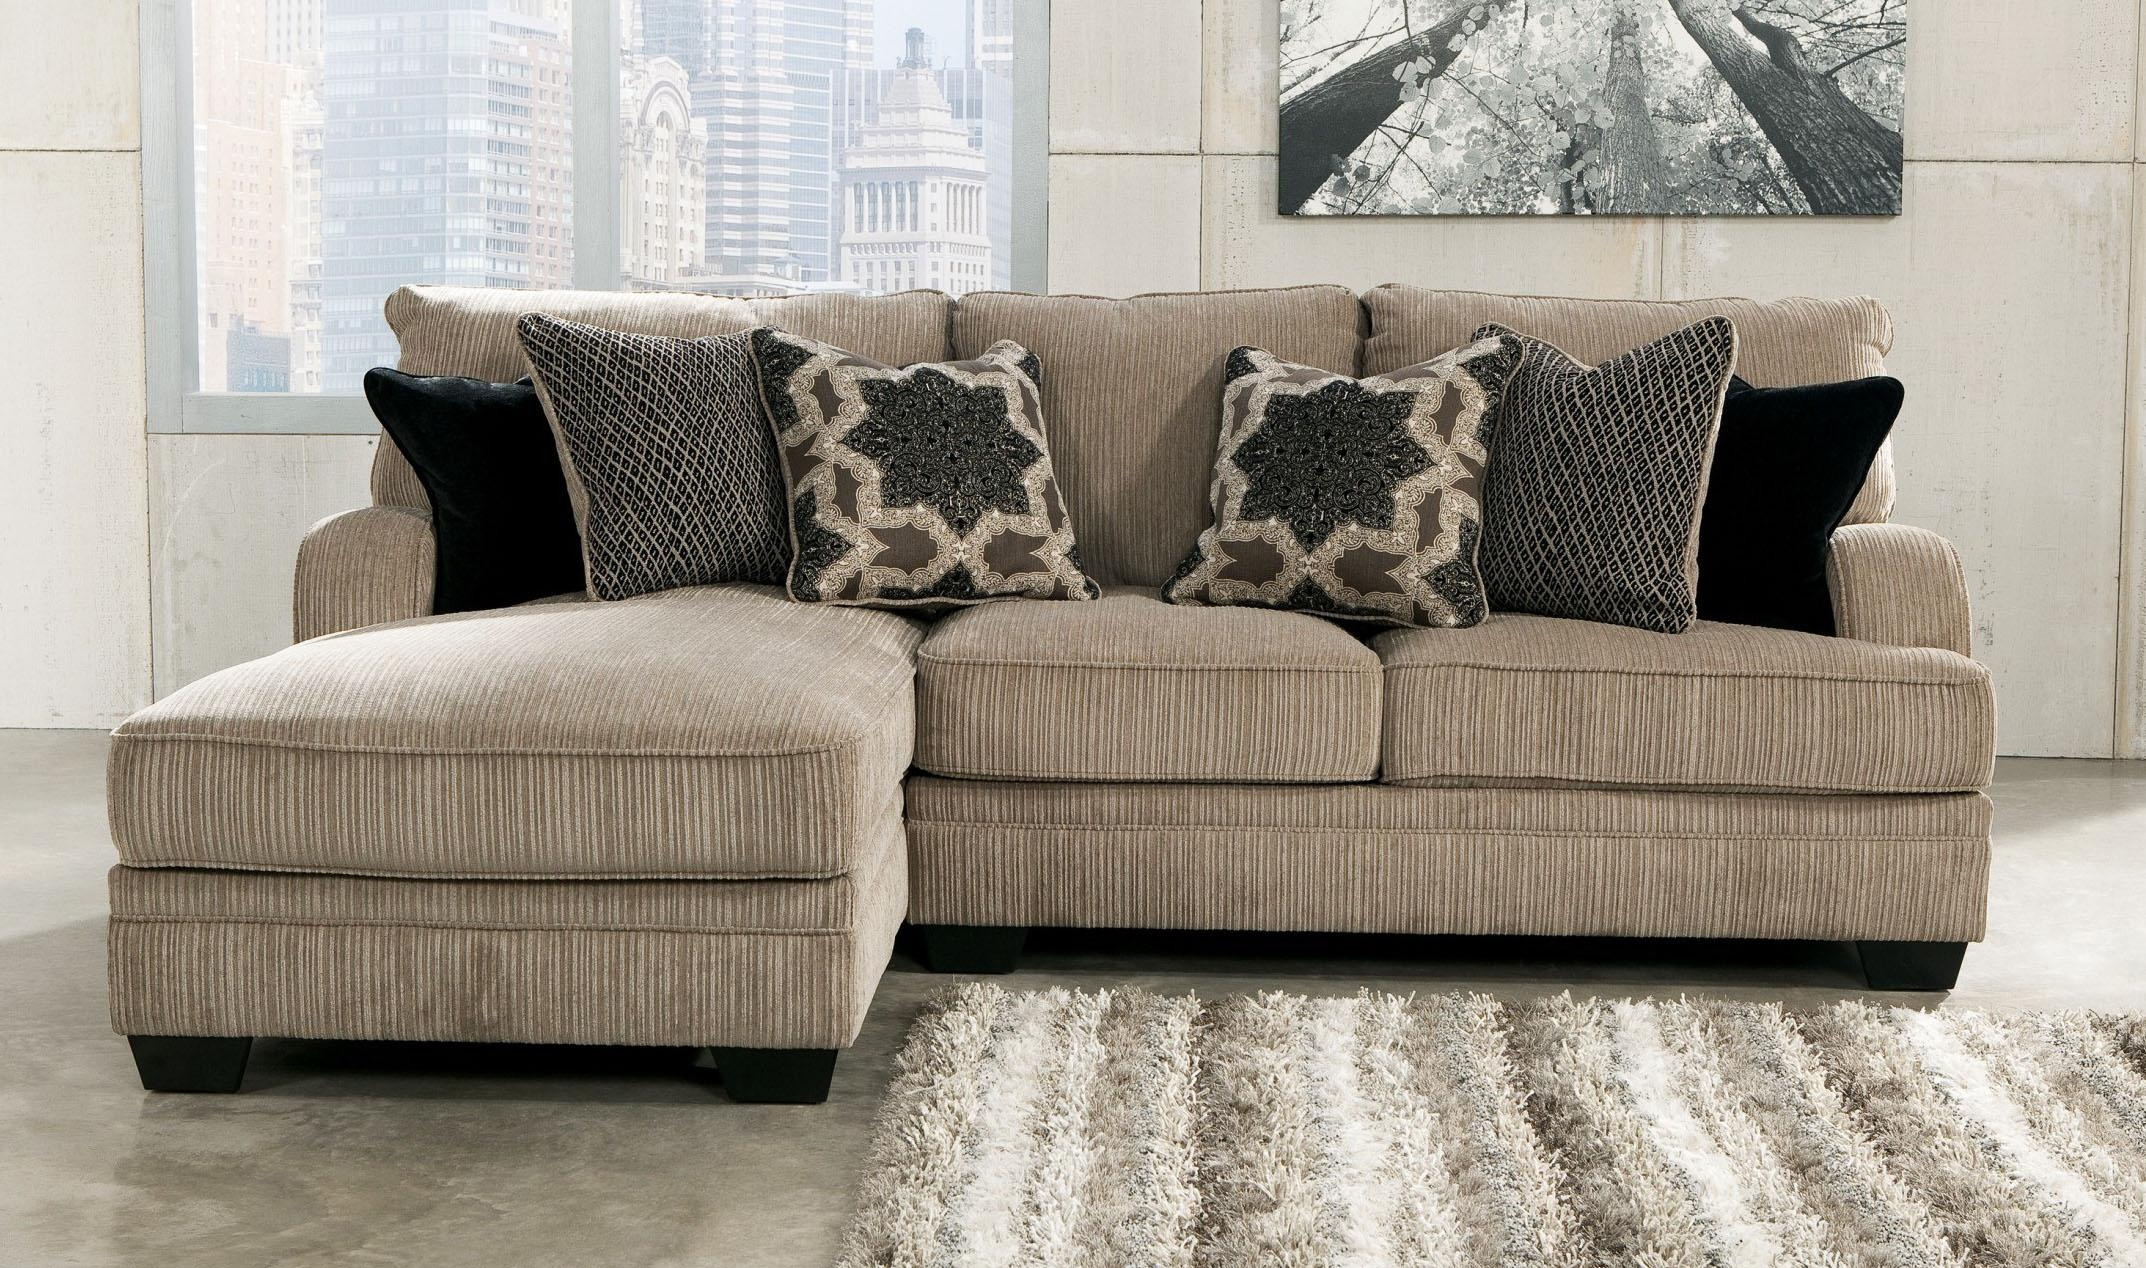 Sofas Center : Cheap Sectional Sofasith Recliners Cleanupflorida Inside Cheap Small Sectionals (Image 15 of 15)